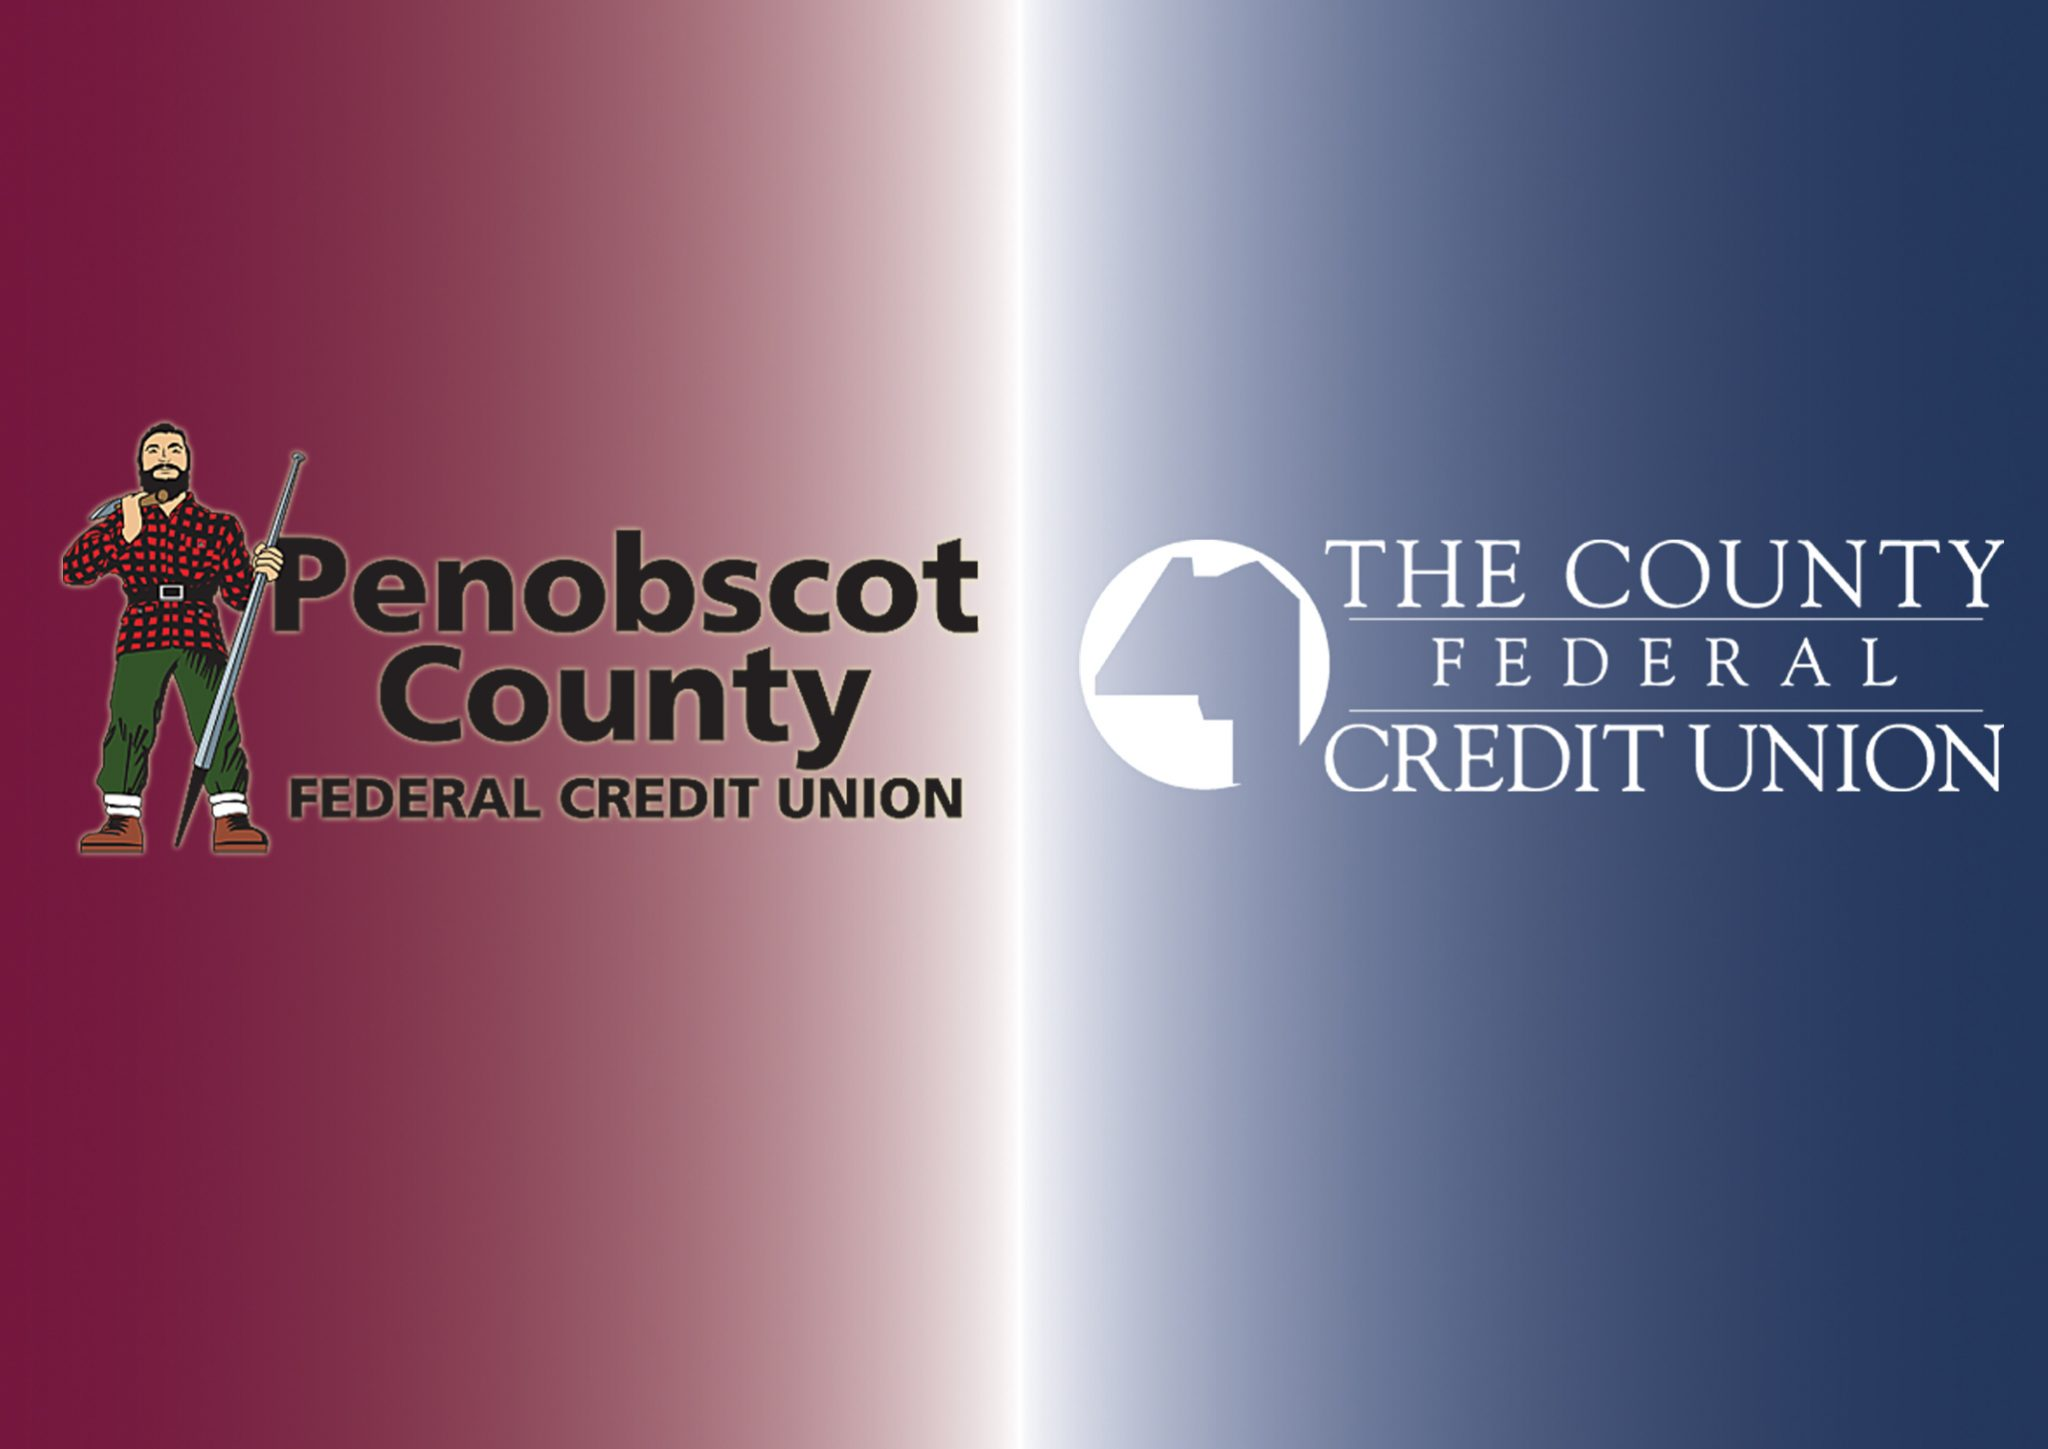 Welcome to The County Federal Credit Union - County FCU